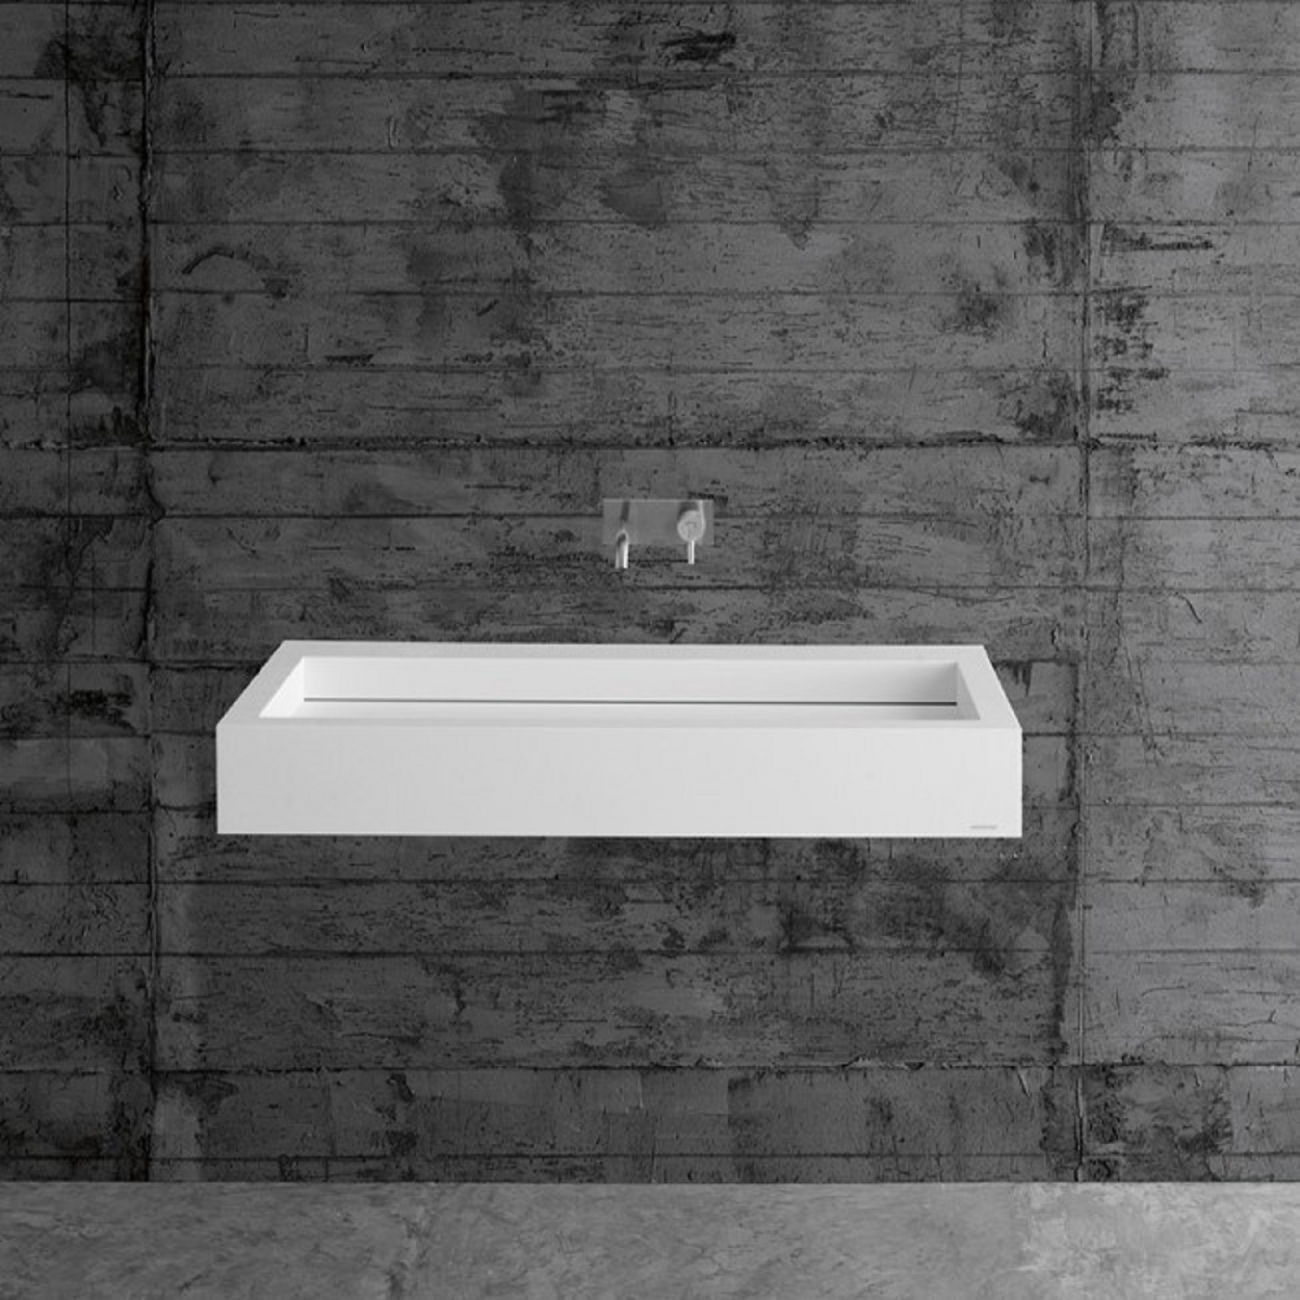 SLOT22 ANTONIO LUPI RECTANGULAR CORIAN WASHBASIN